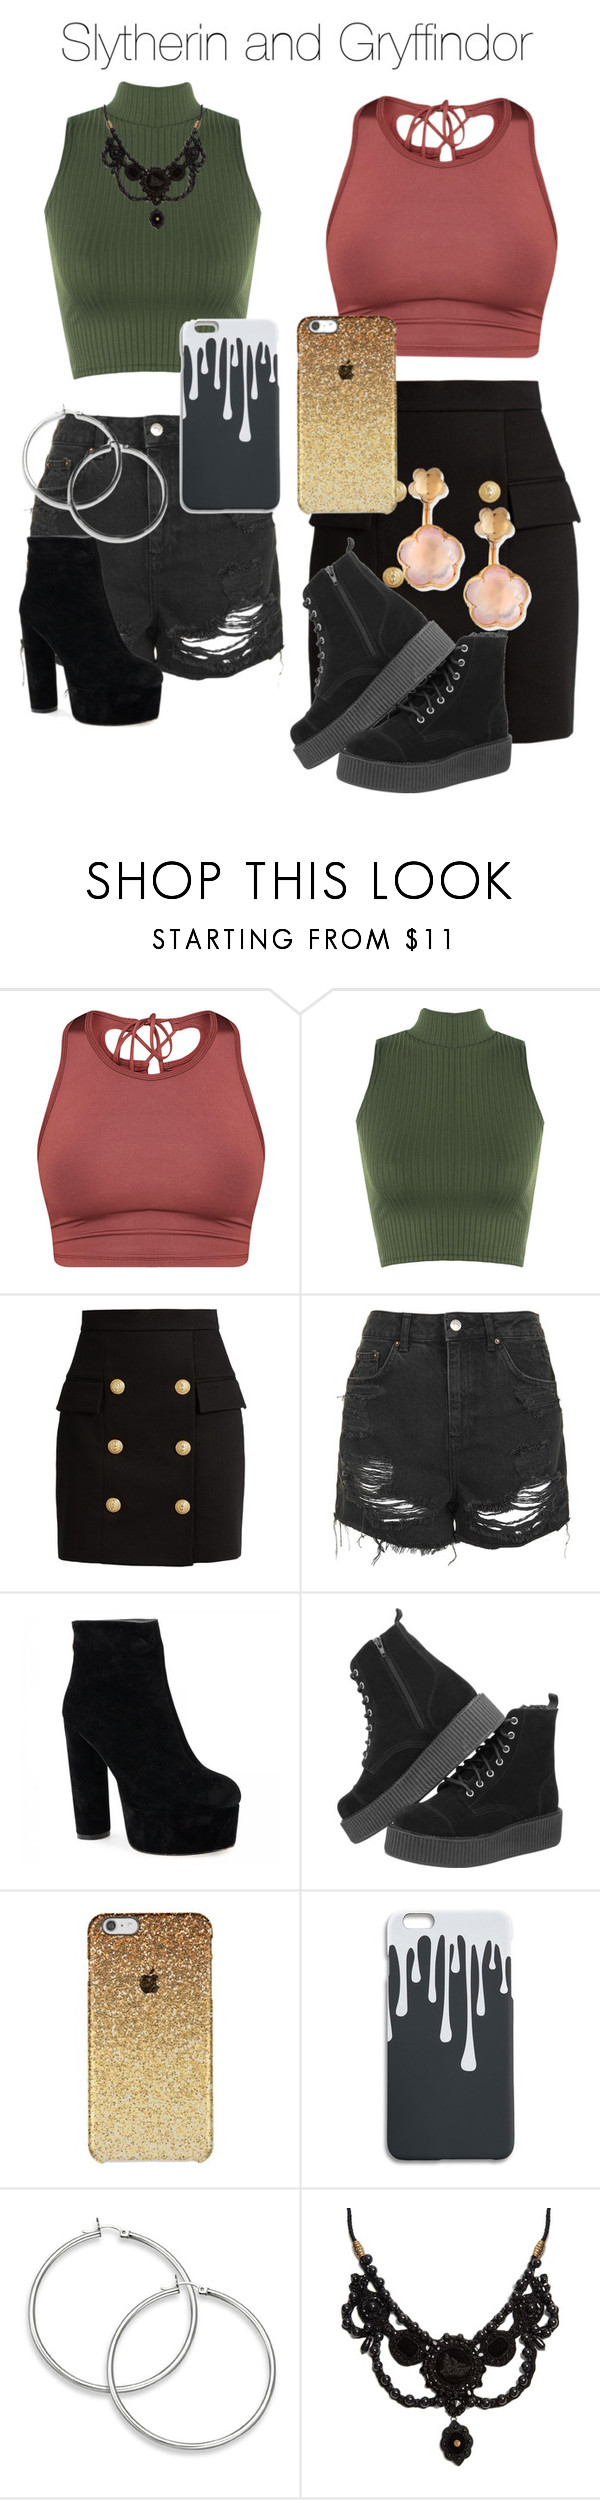 """Slytherin and Gryffindor"" by adisonn555 ❤ liked on Polyvore featuring WearAll, Balmain, Topshop, Gucci and Pasquale Bruni"